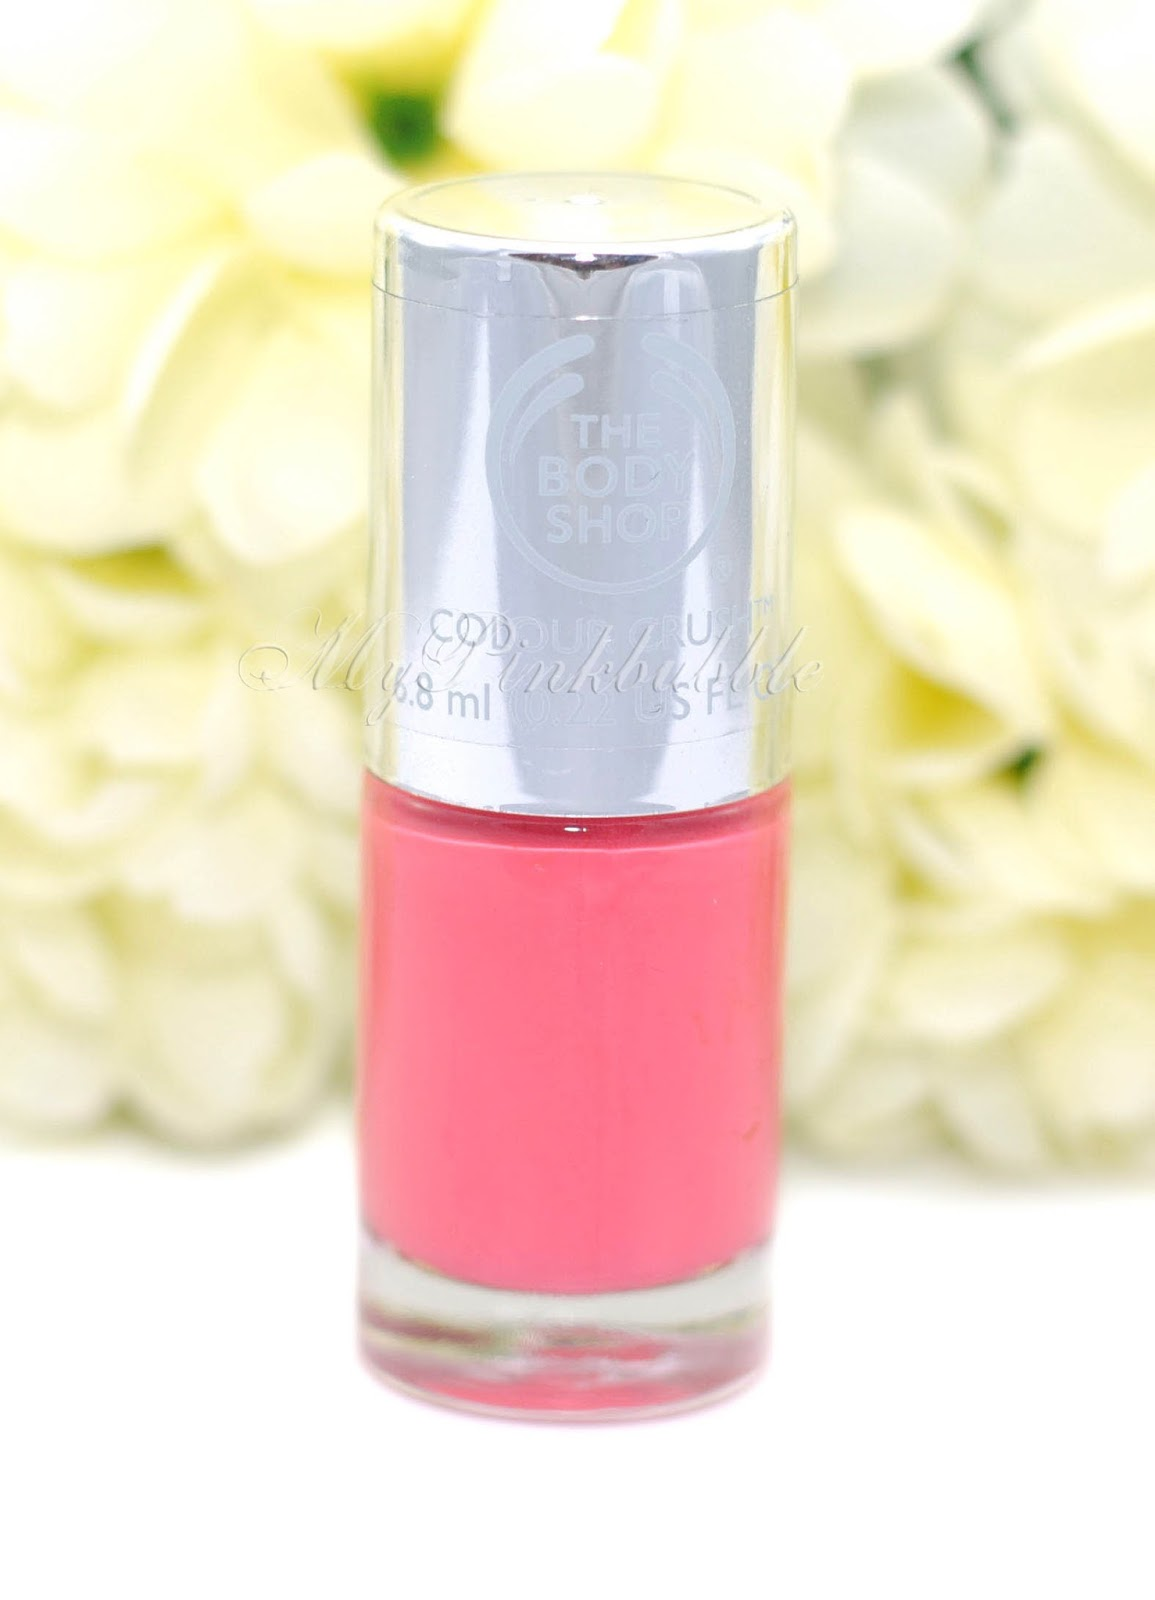 Body shop 330 rose cheeks